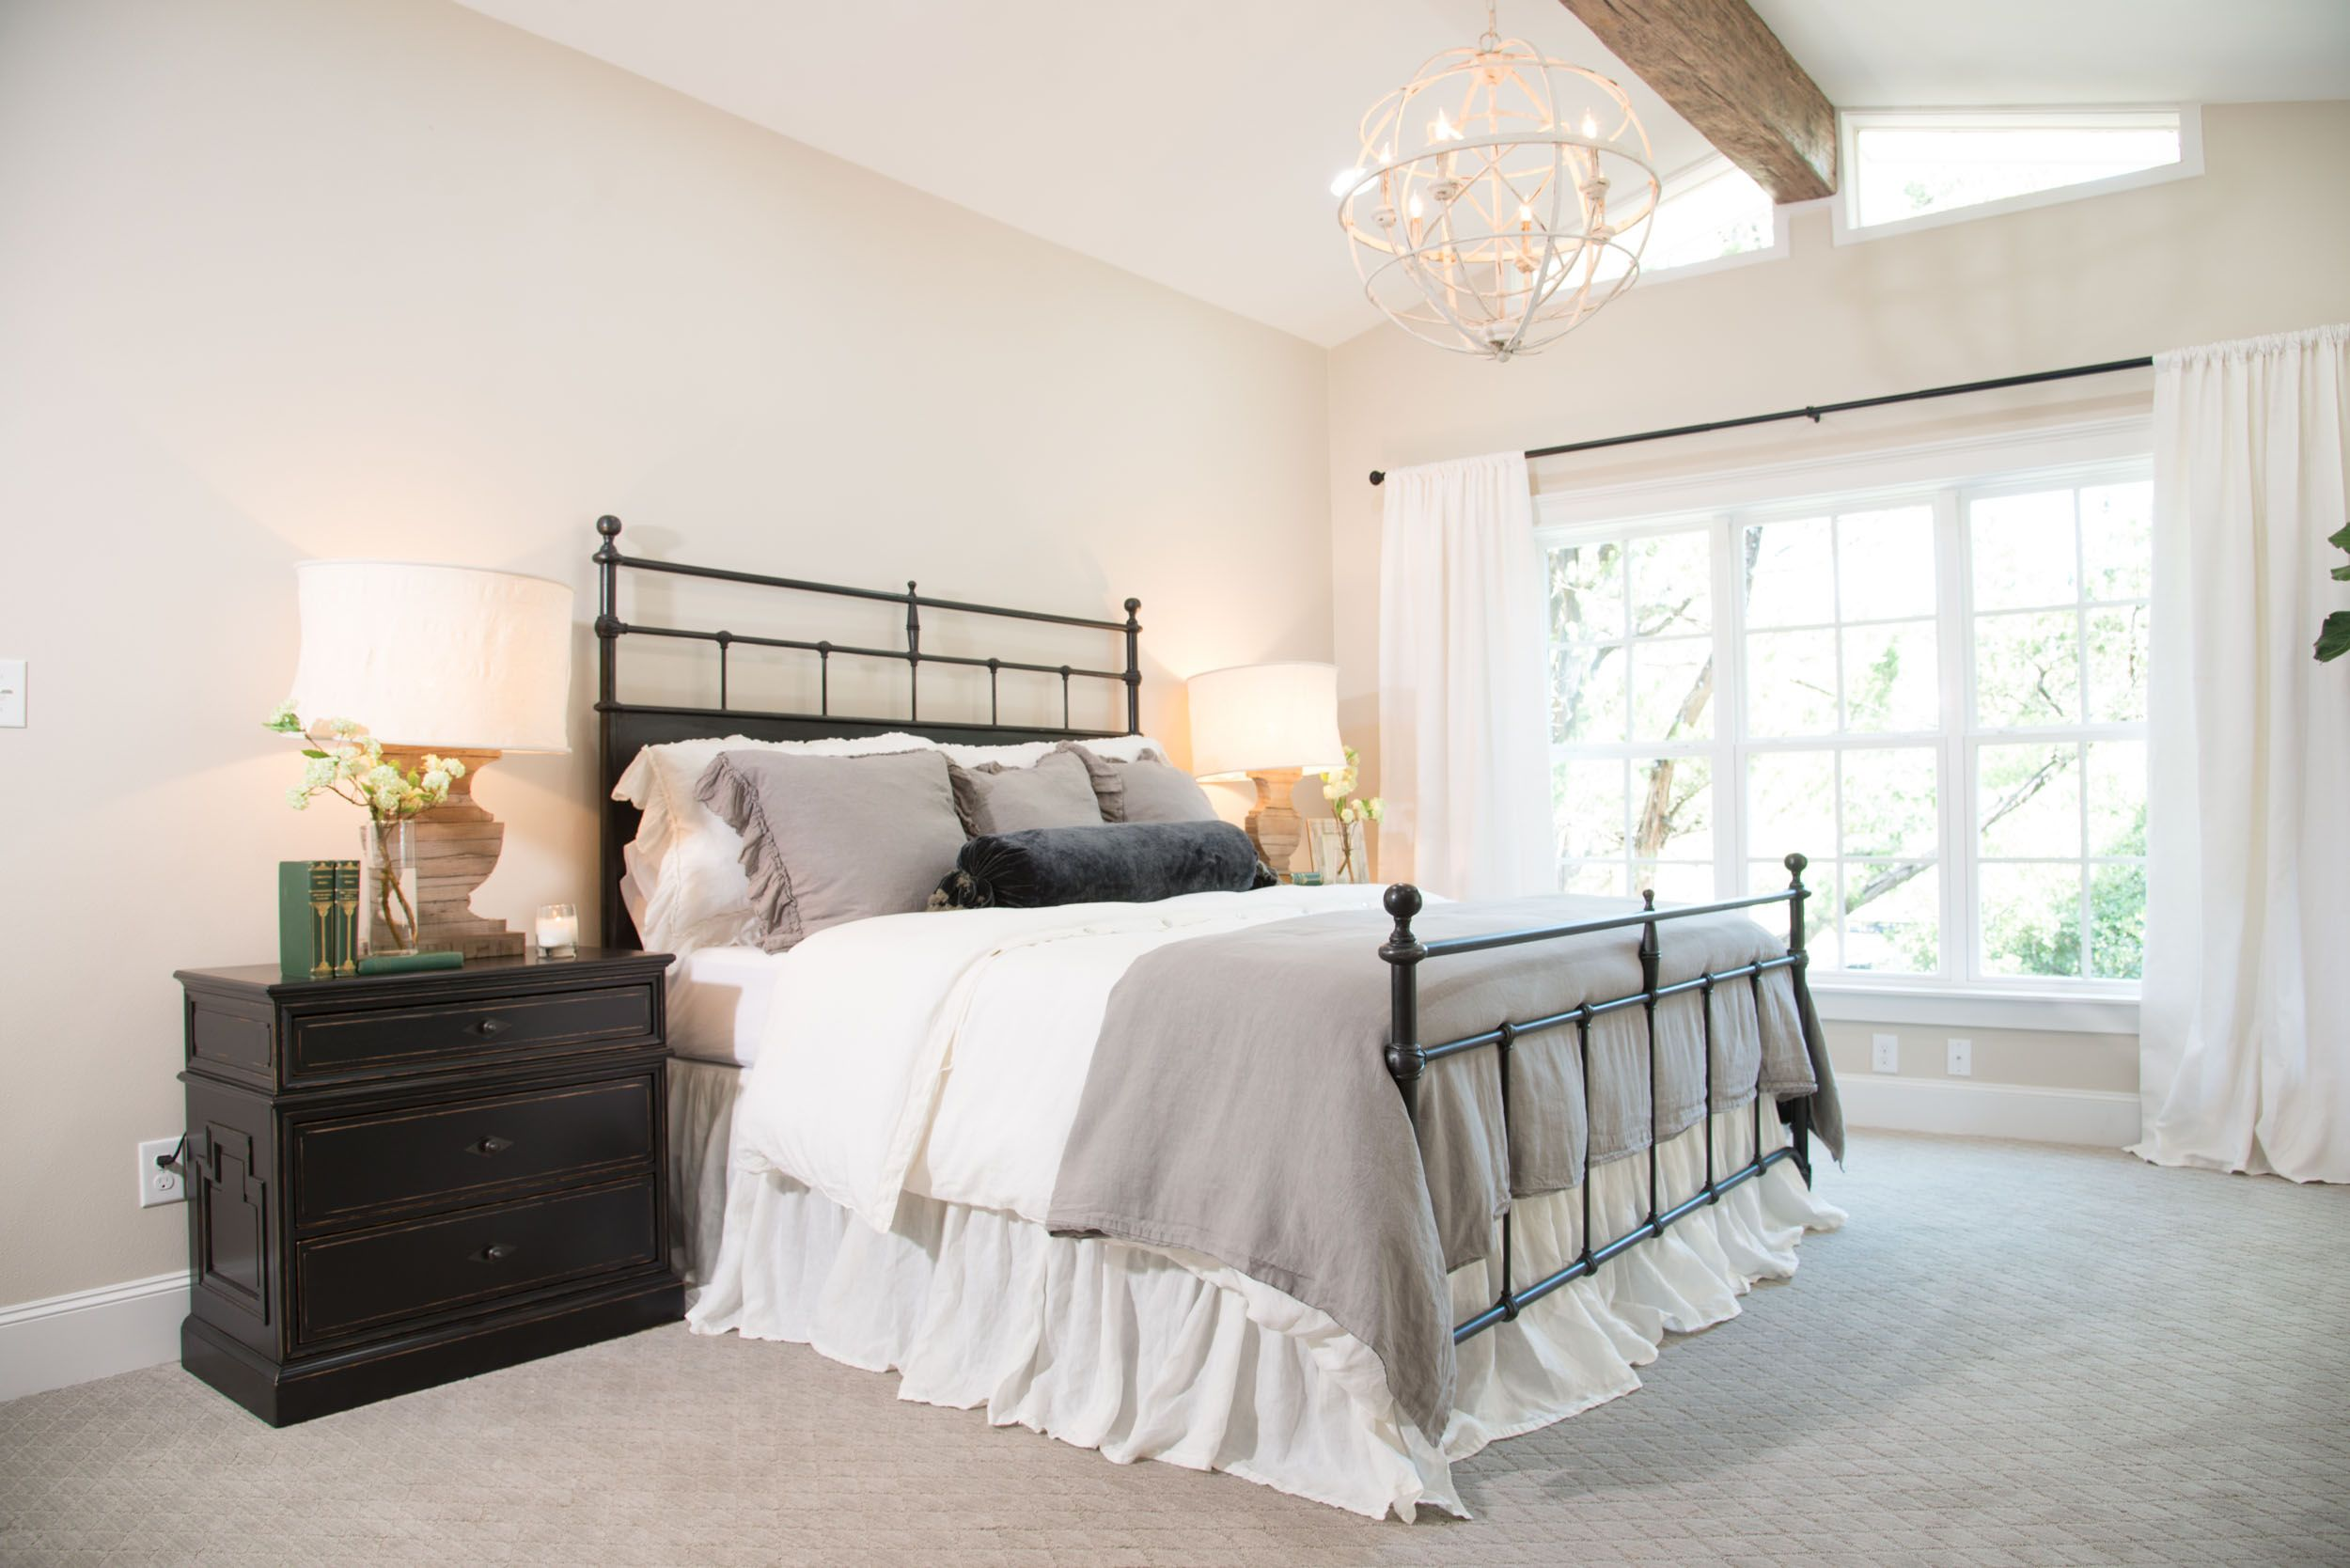 Season 4 episode 1 house seasons joanna gaines and for Joanna gaines bedroom designs